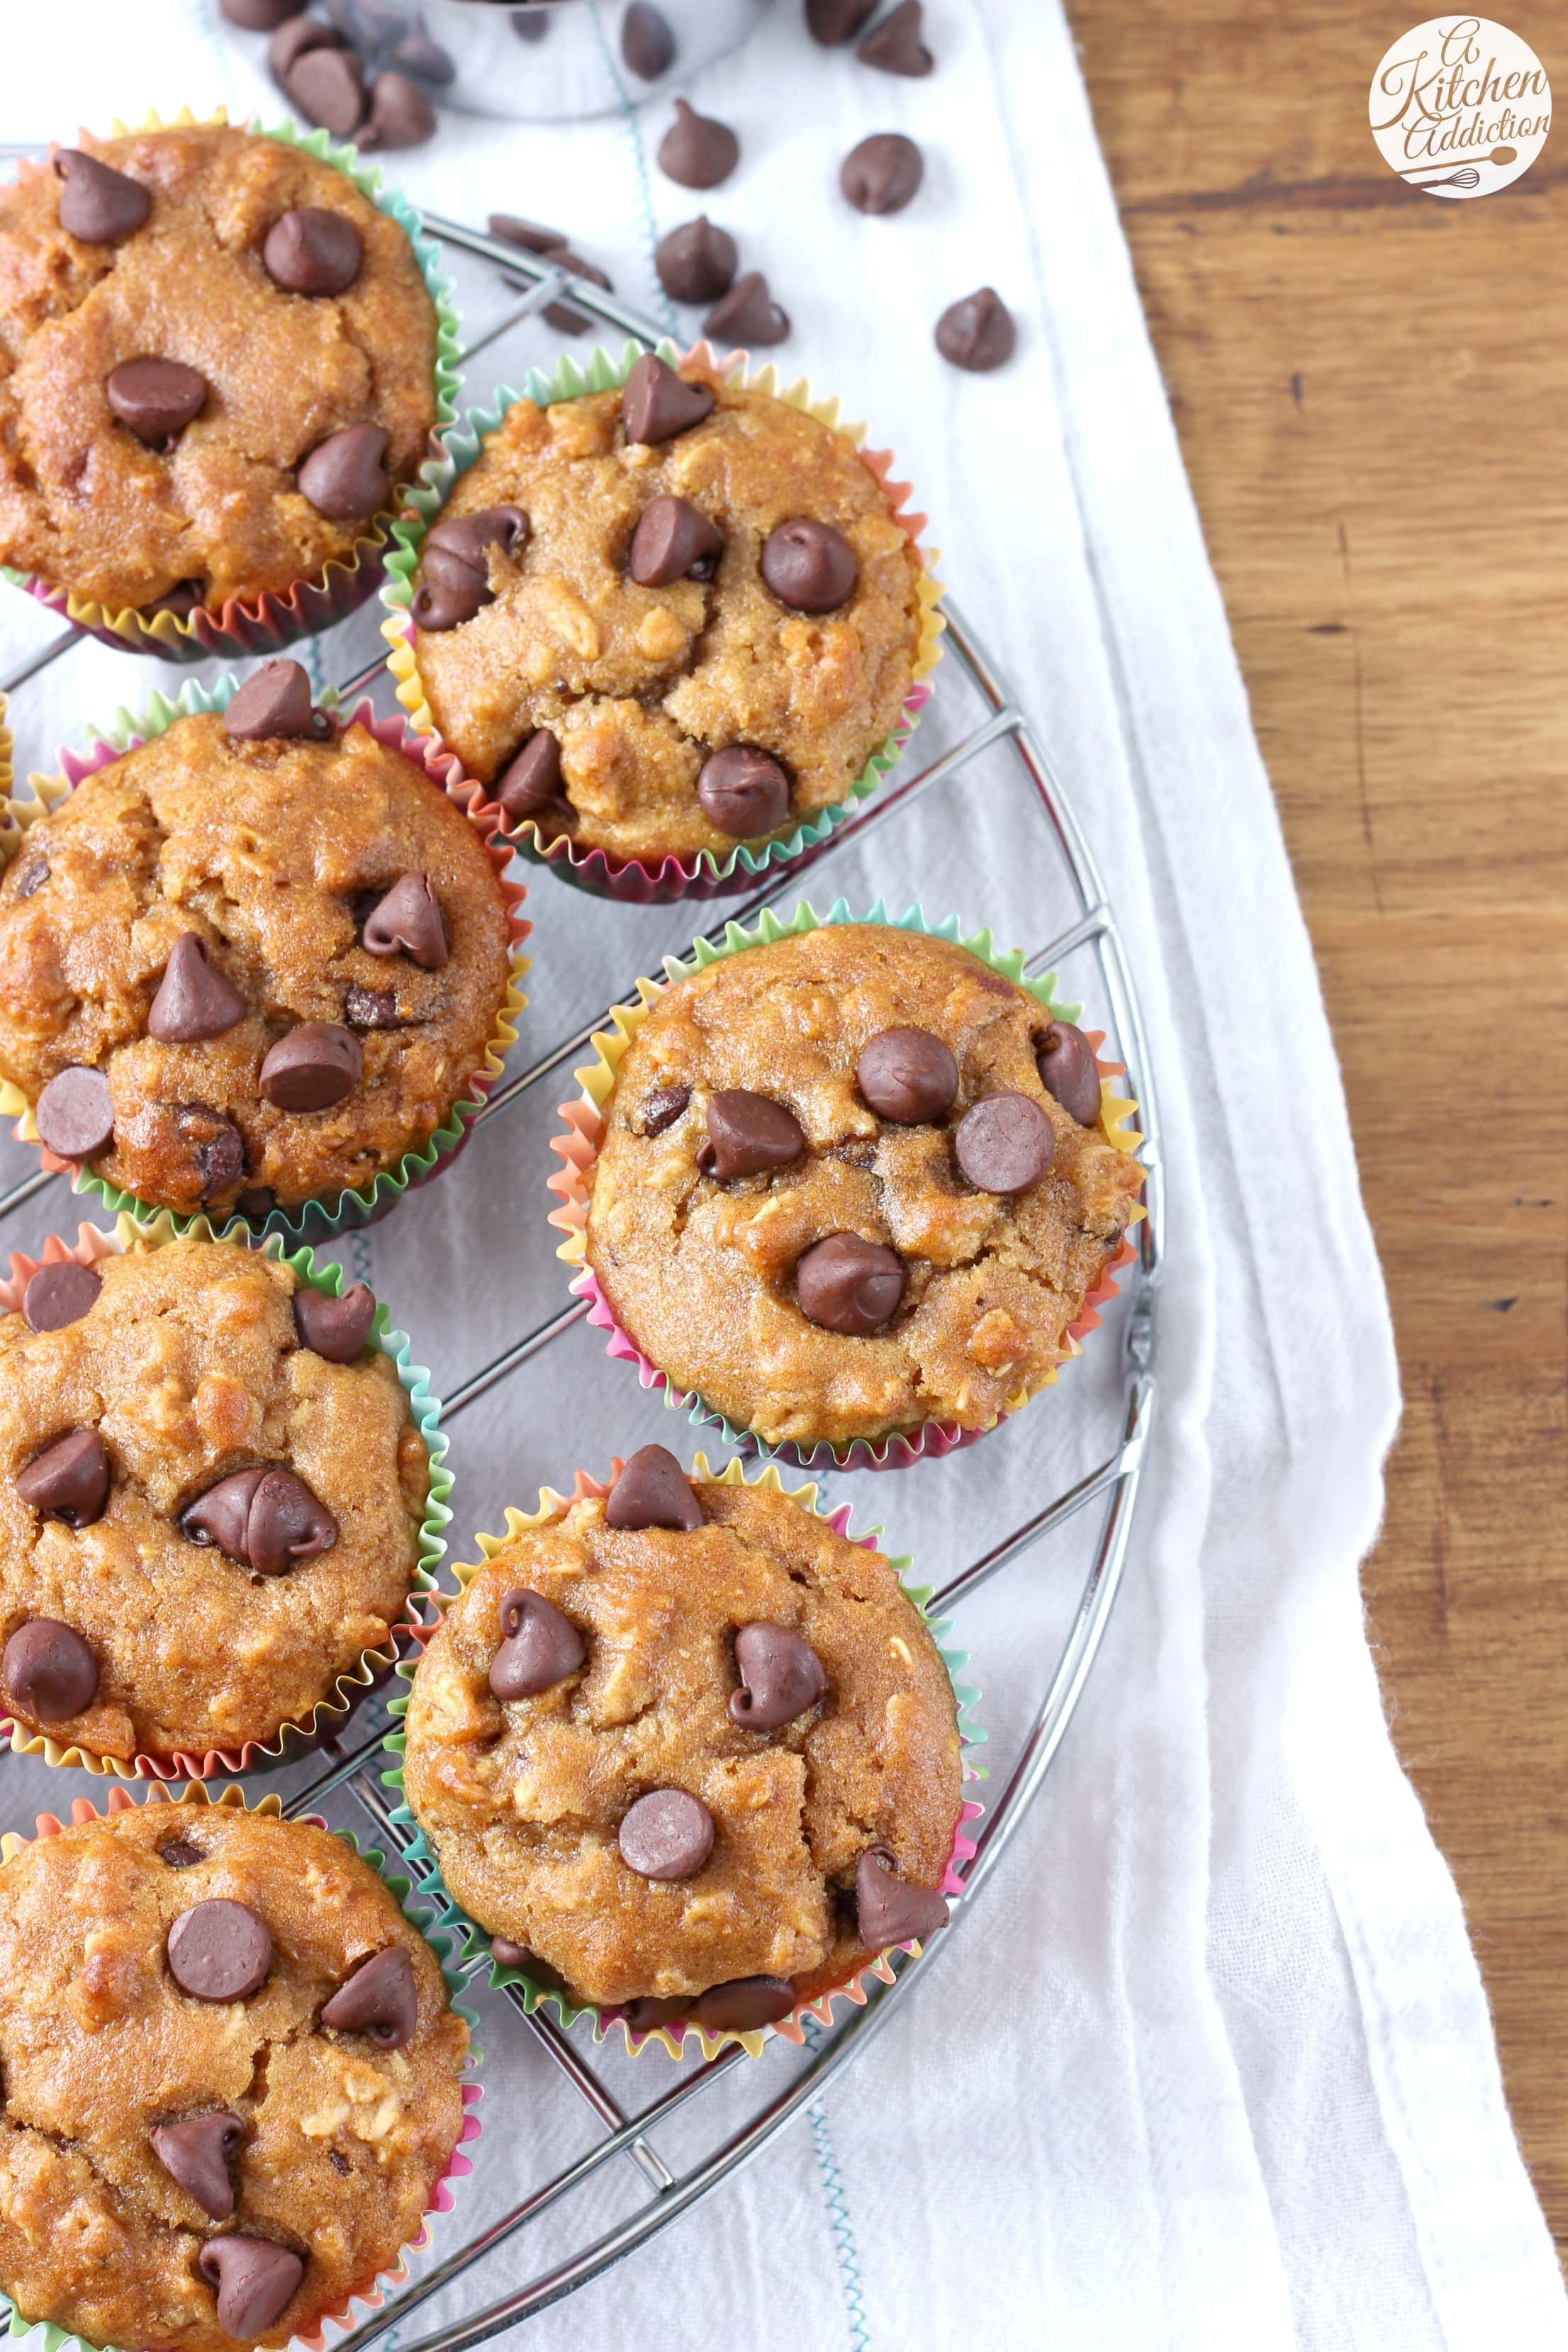 Peanut Butter Chocolate Chip Oat Muffins Recipe from A Kitchen Addiction